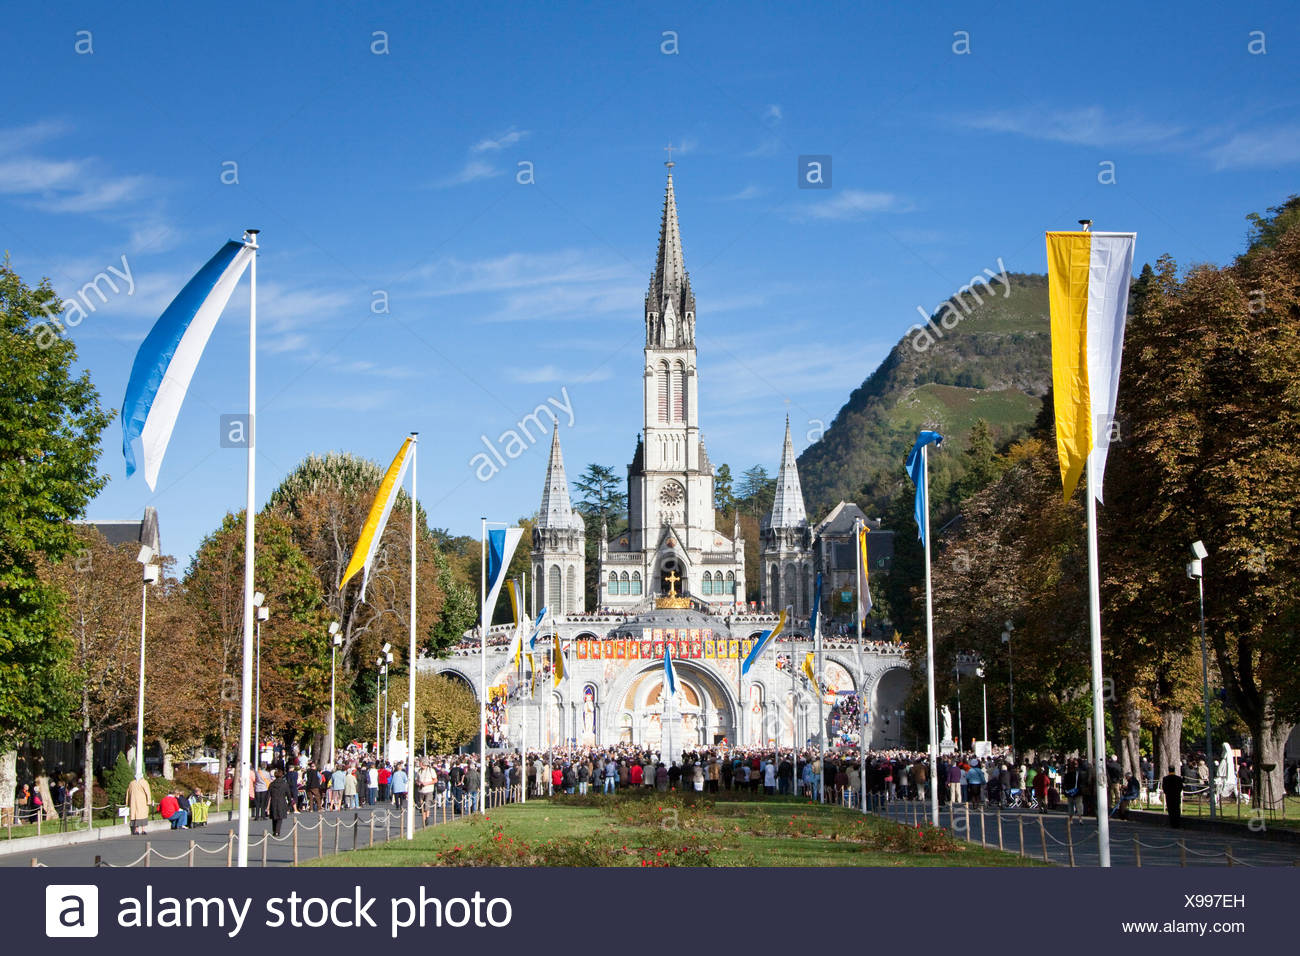 France, Europe, Lourdes, Pyrenees, place of pilgrimage, hope, miracle, church, believers, creditors, religion - Stock Image